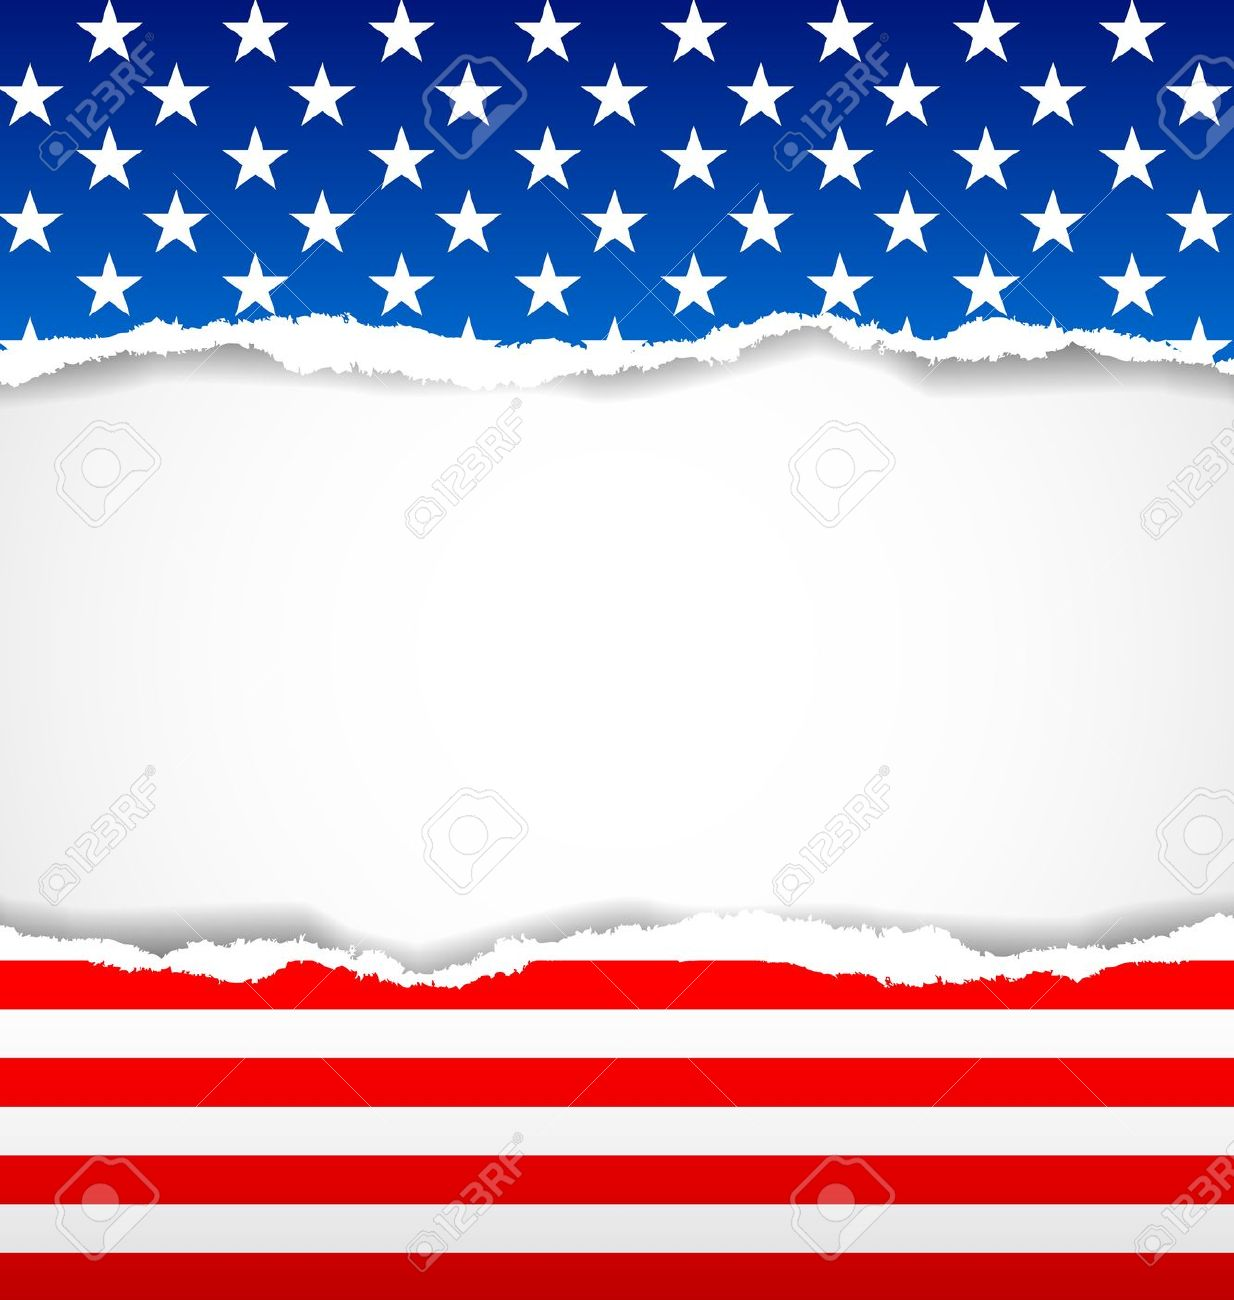 Patriotic Background Images II22 High Definition 1234x1300